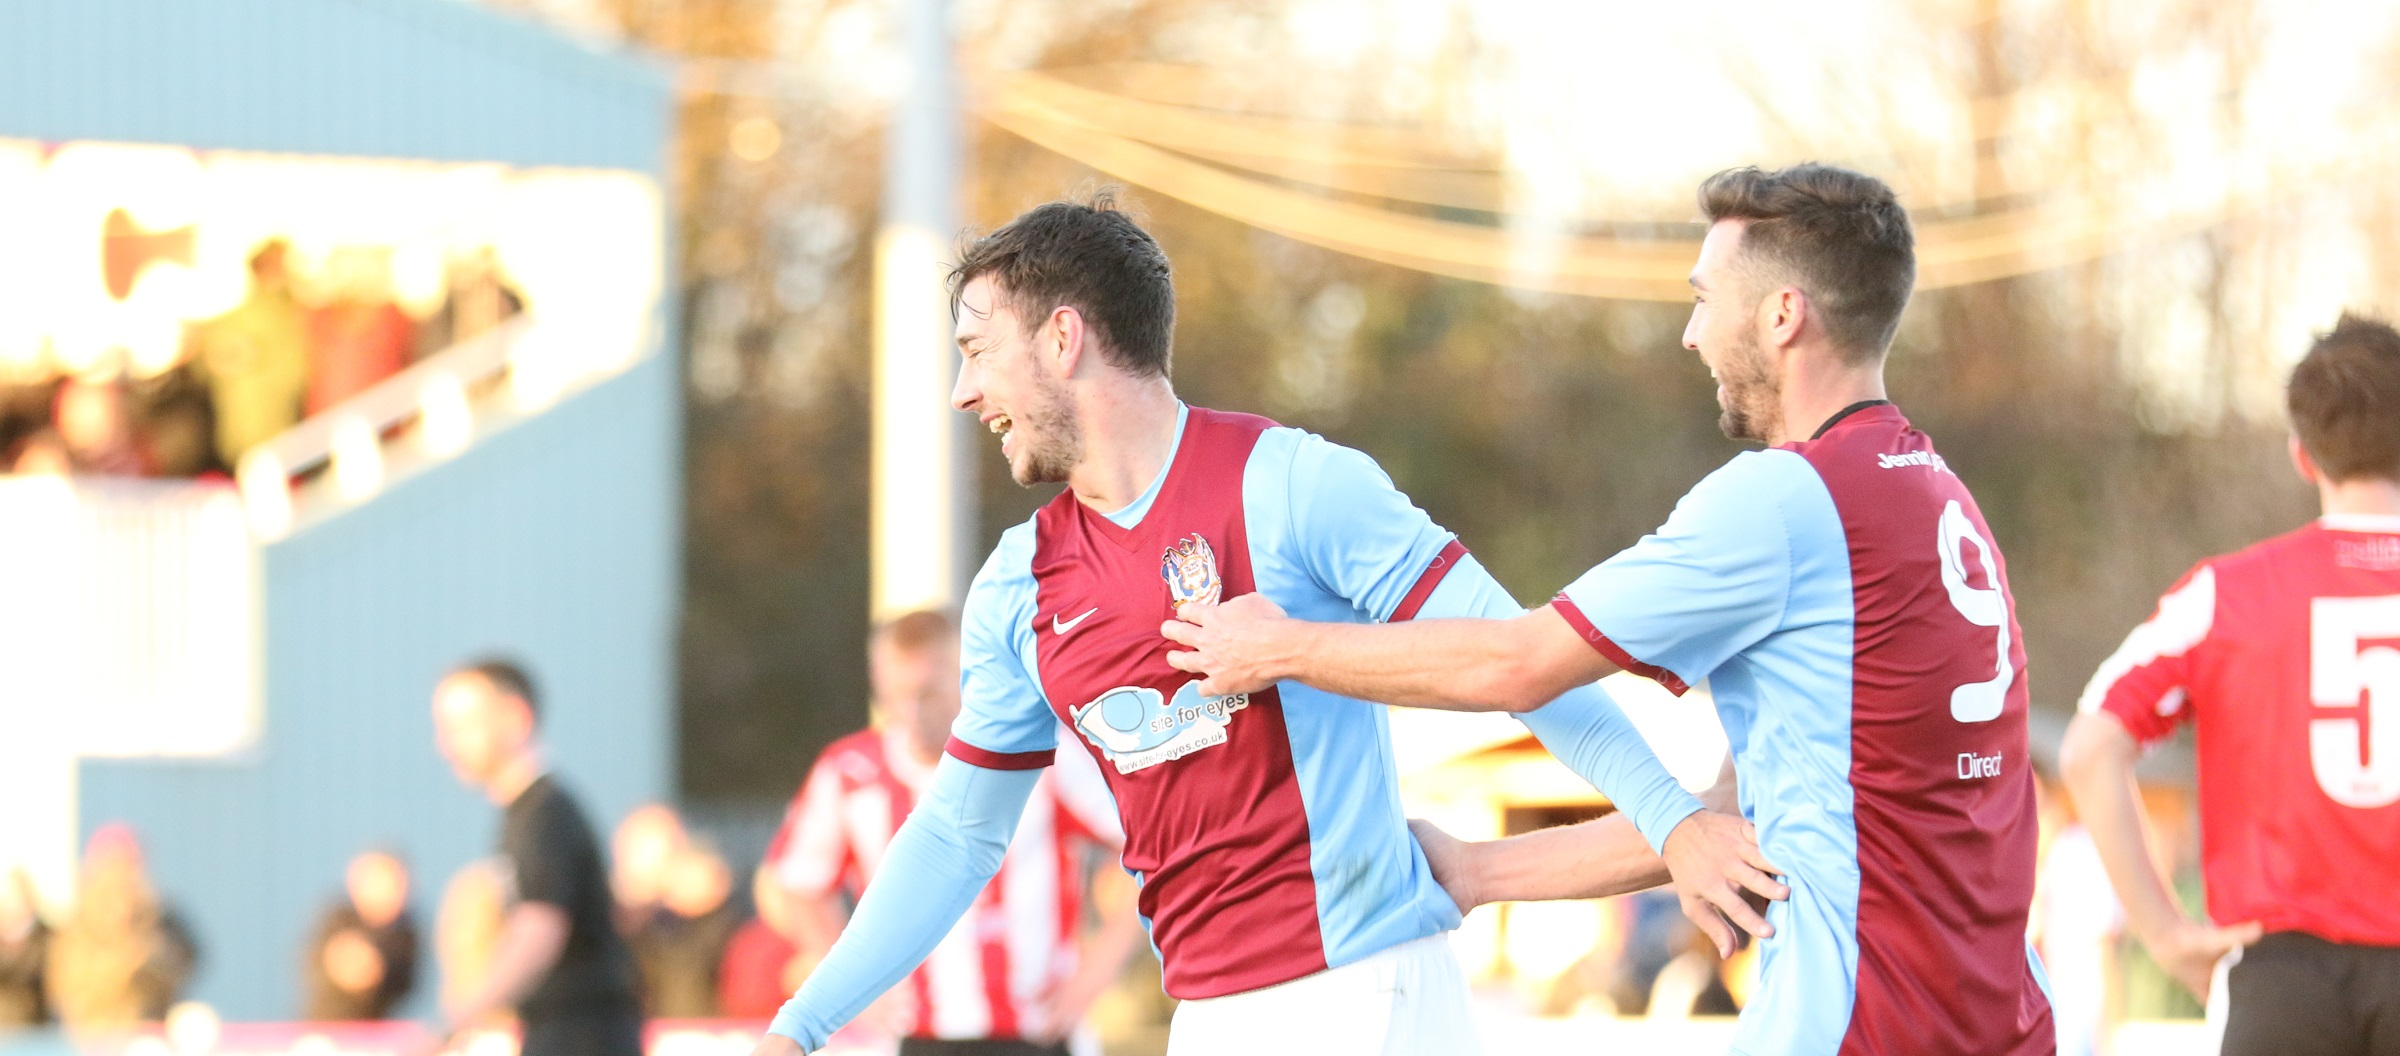 South Shields vs Guisborough Town